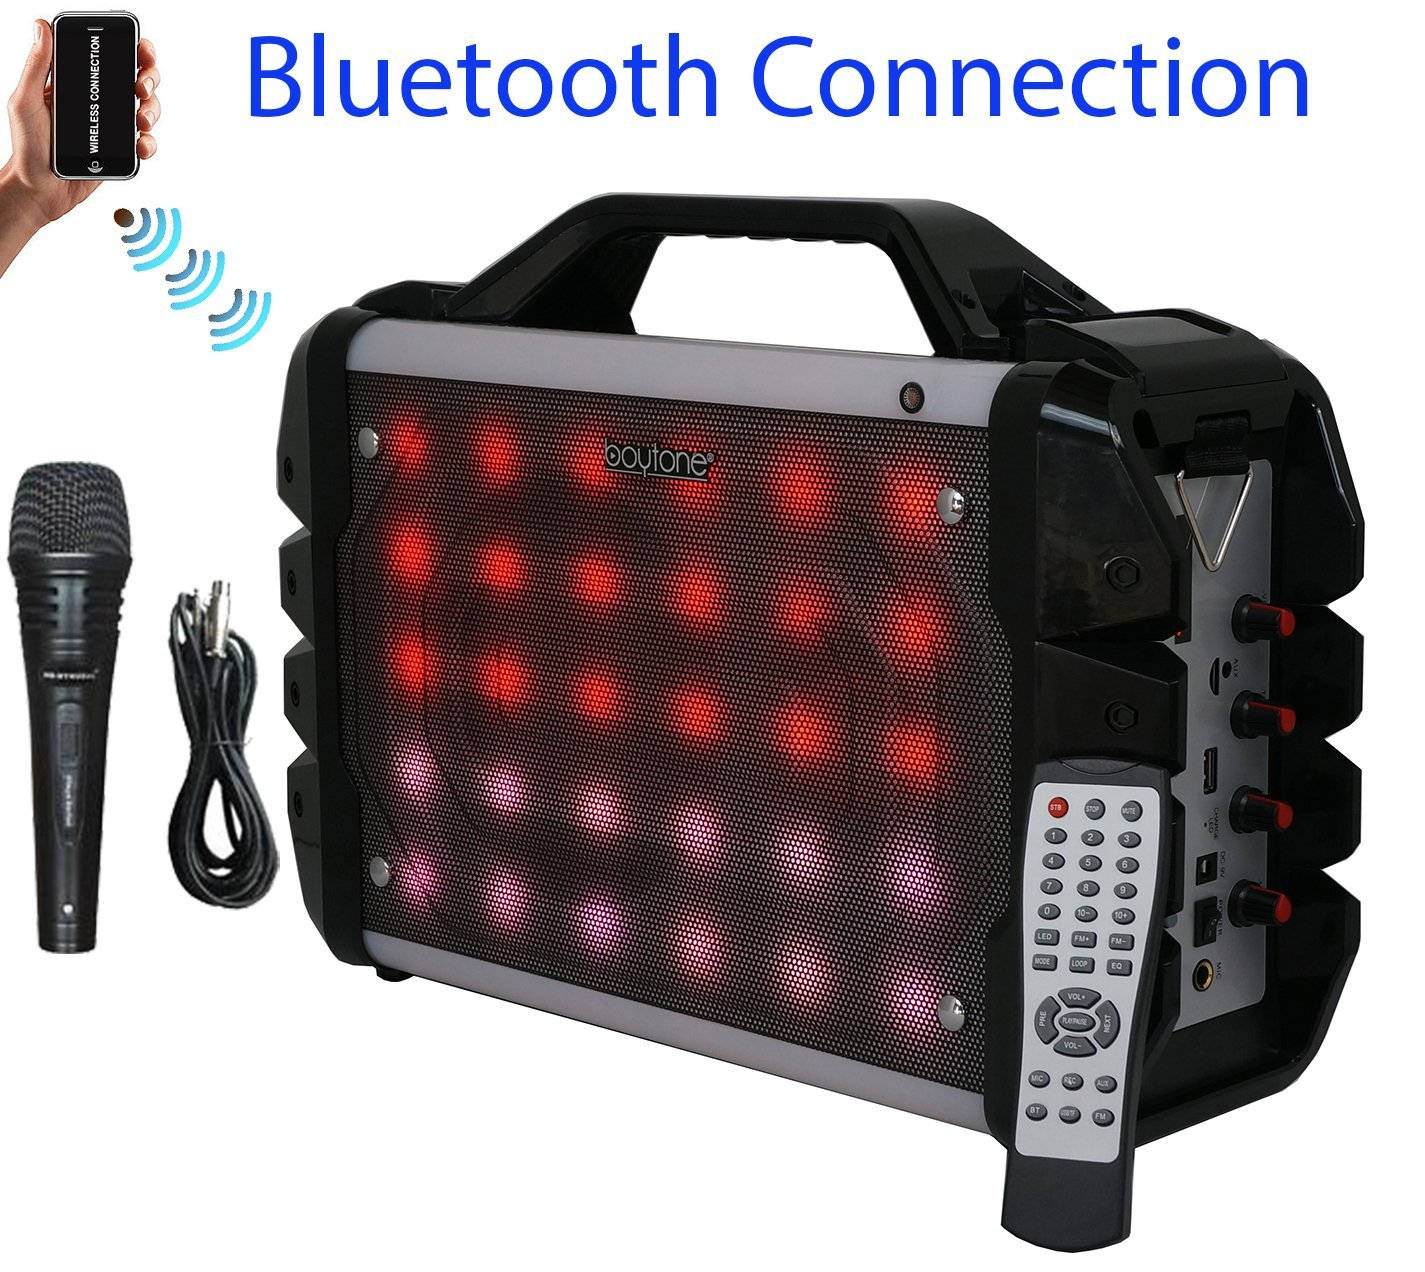 Boytone BT-52M Portable Audio karaoke Bluetooth PA Speaker System with  Microphone, FM Radio, USB Port | MP3| AUX ports, built in rechargeable  Battery